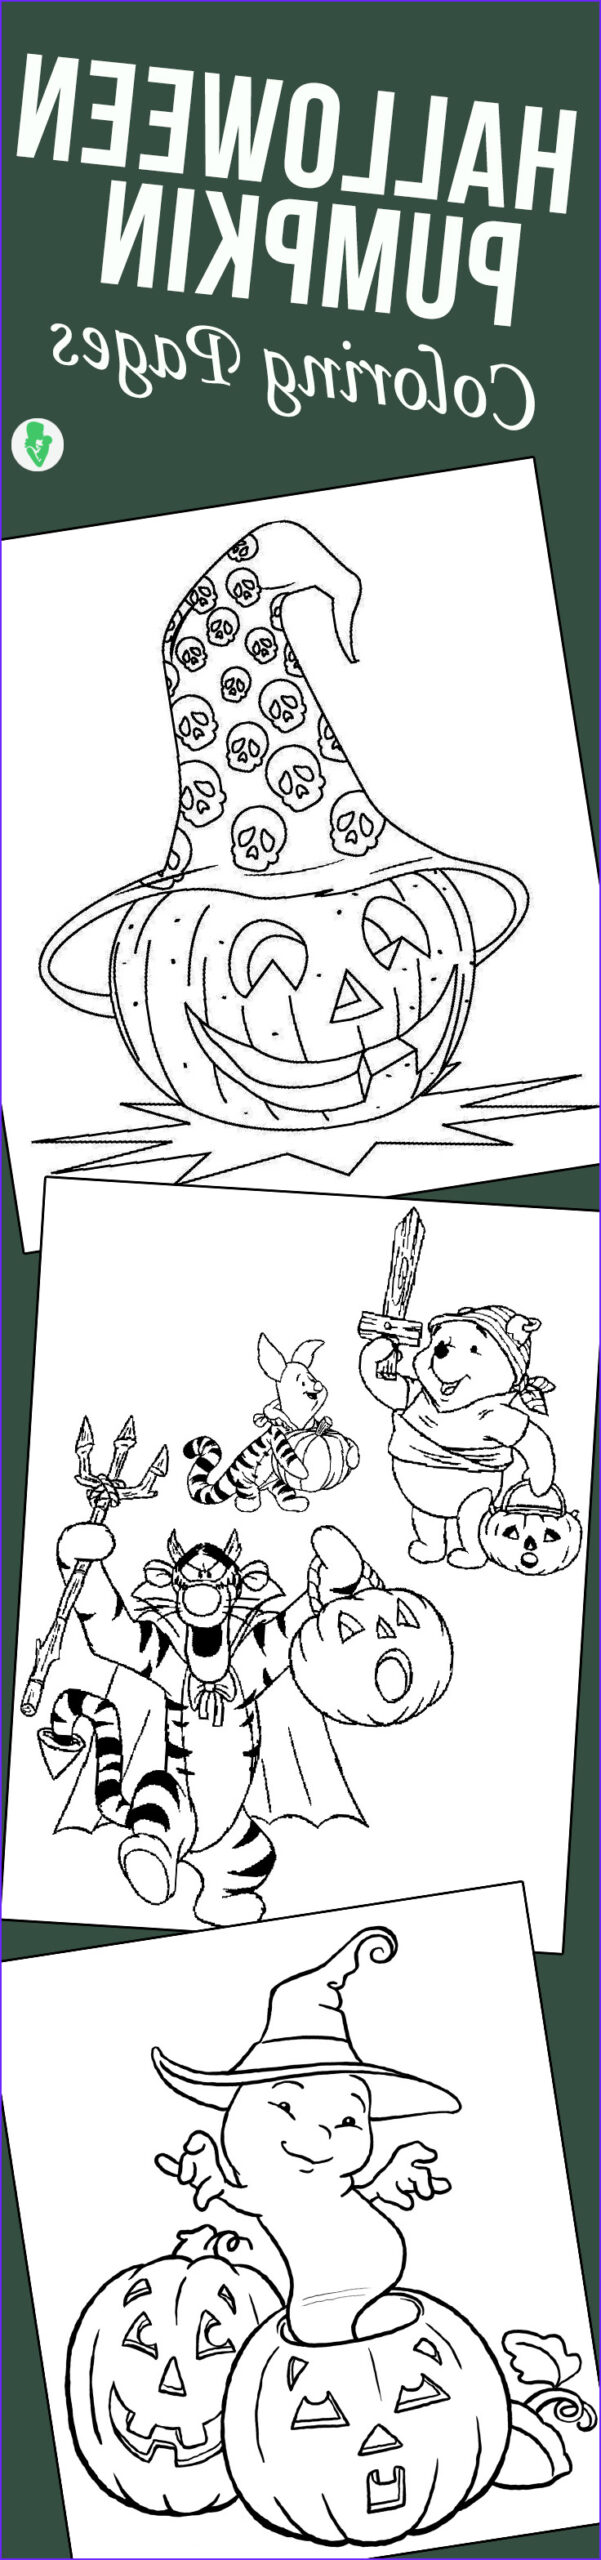 Cute Halloween Coloring Pages for Kids Luxury Photos top 10 Free Printable Halloween Pumpkin Coloring Pages